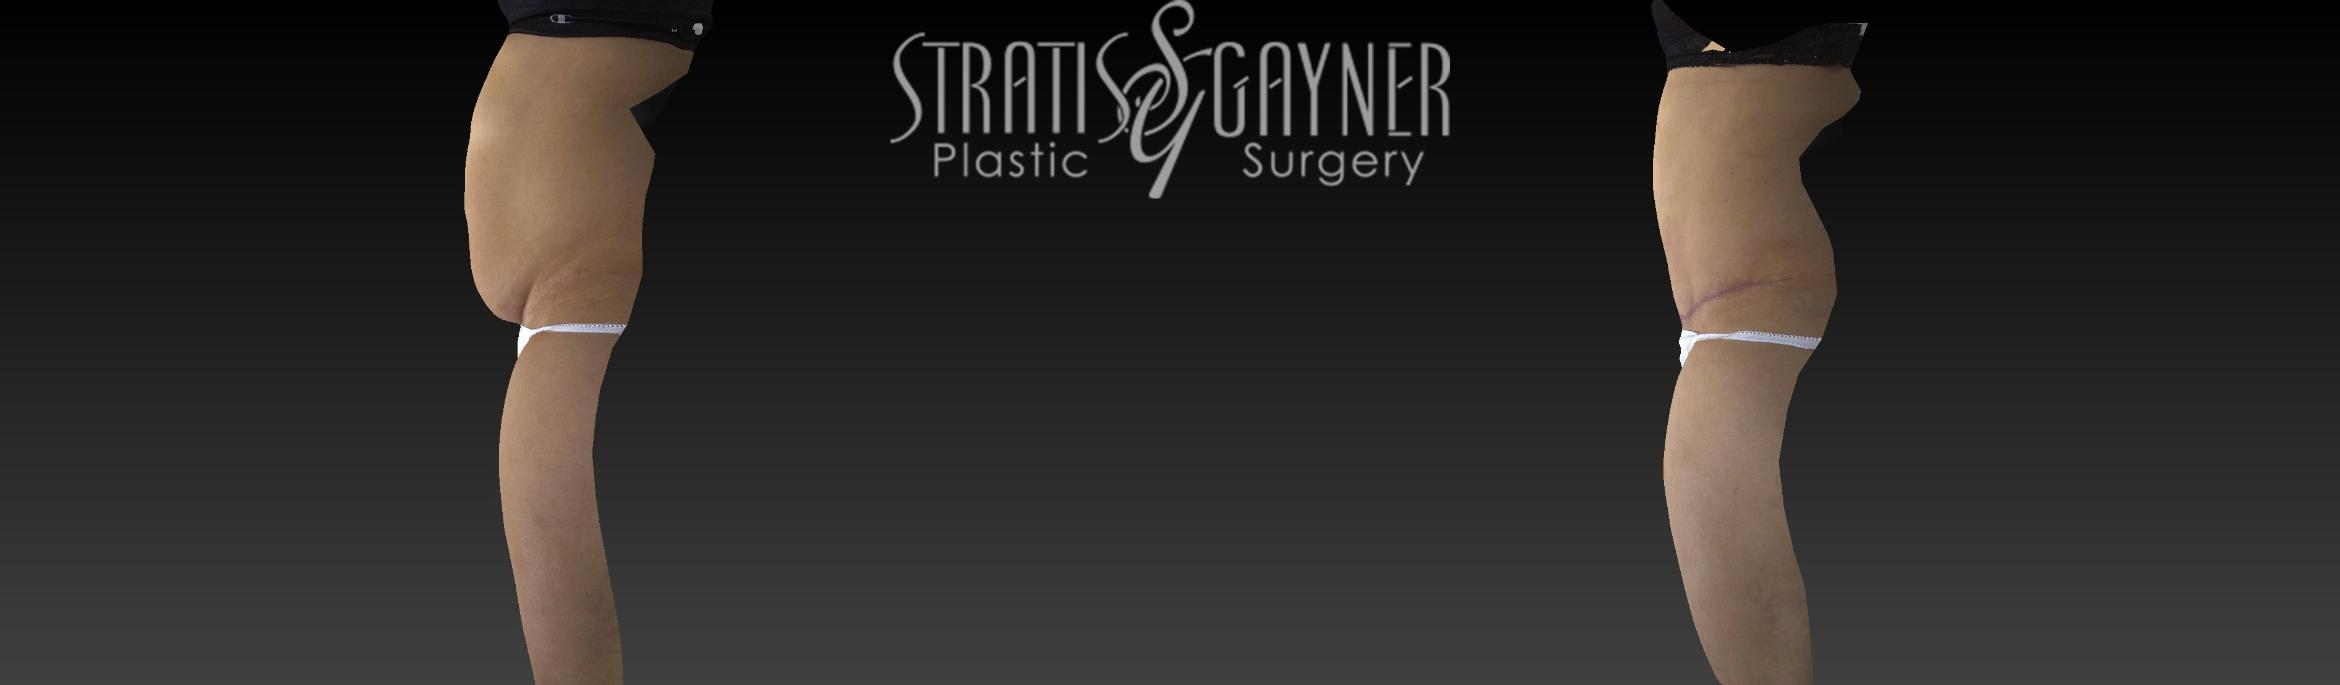 Tummy Tuck Case 17 Before & After View #5 | Harrisburg, PA | Stratis Gayner Plastic Surgery